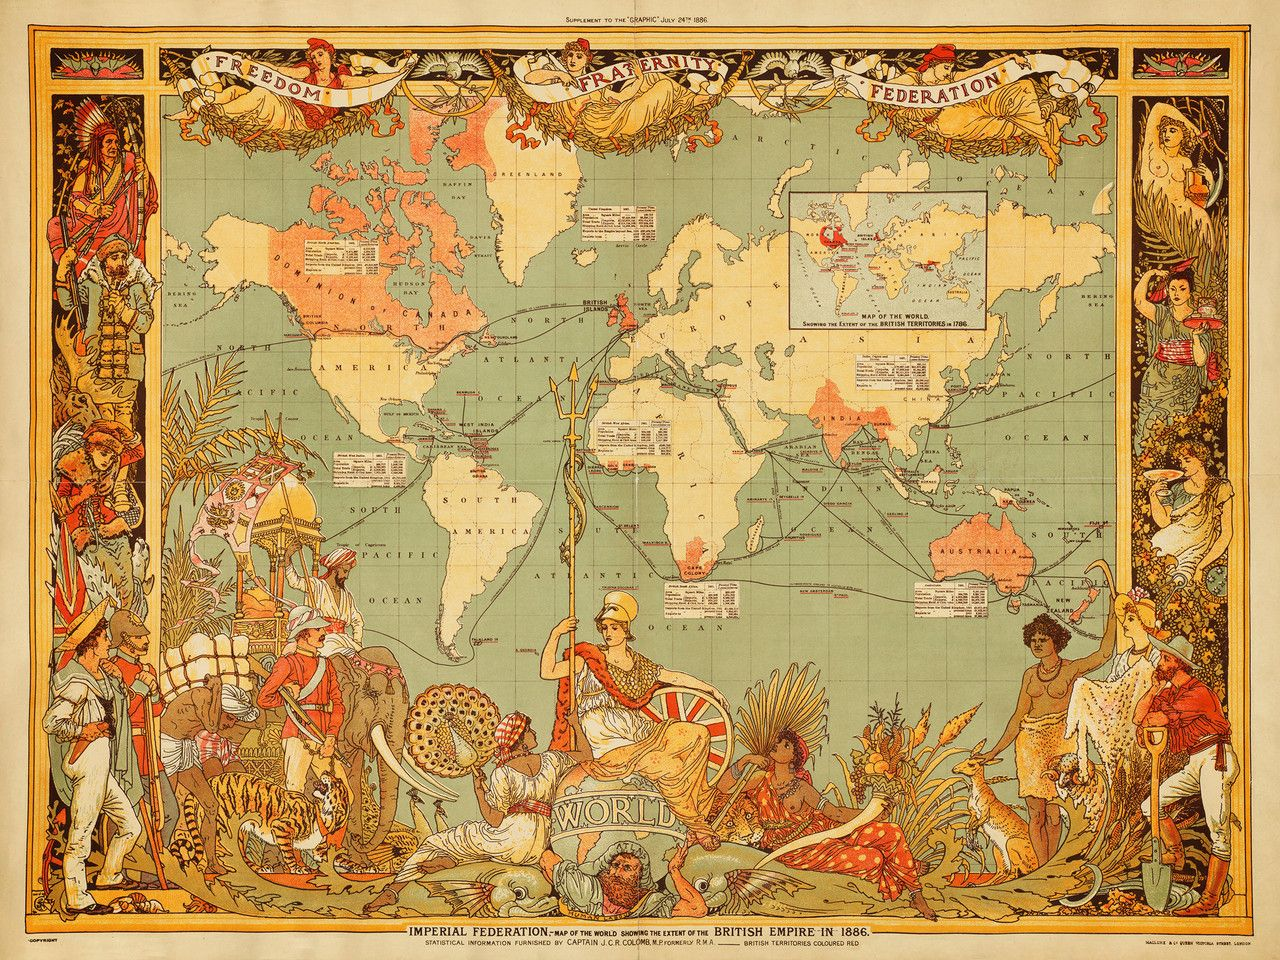 Vintage Style World Map By Walter Crane Showing The British Empire - 1800s world map